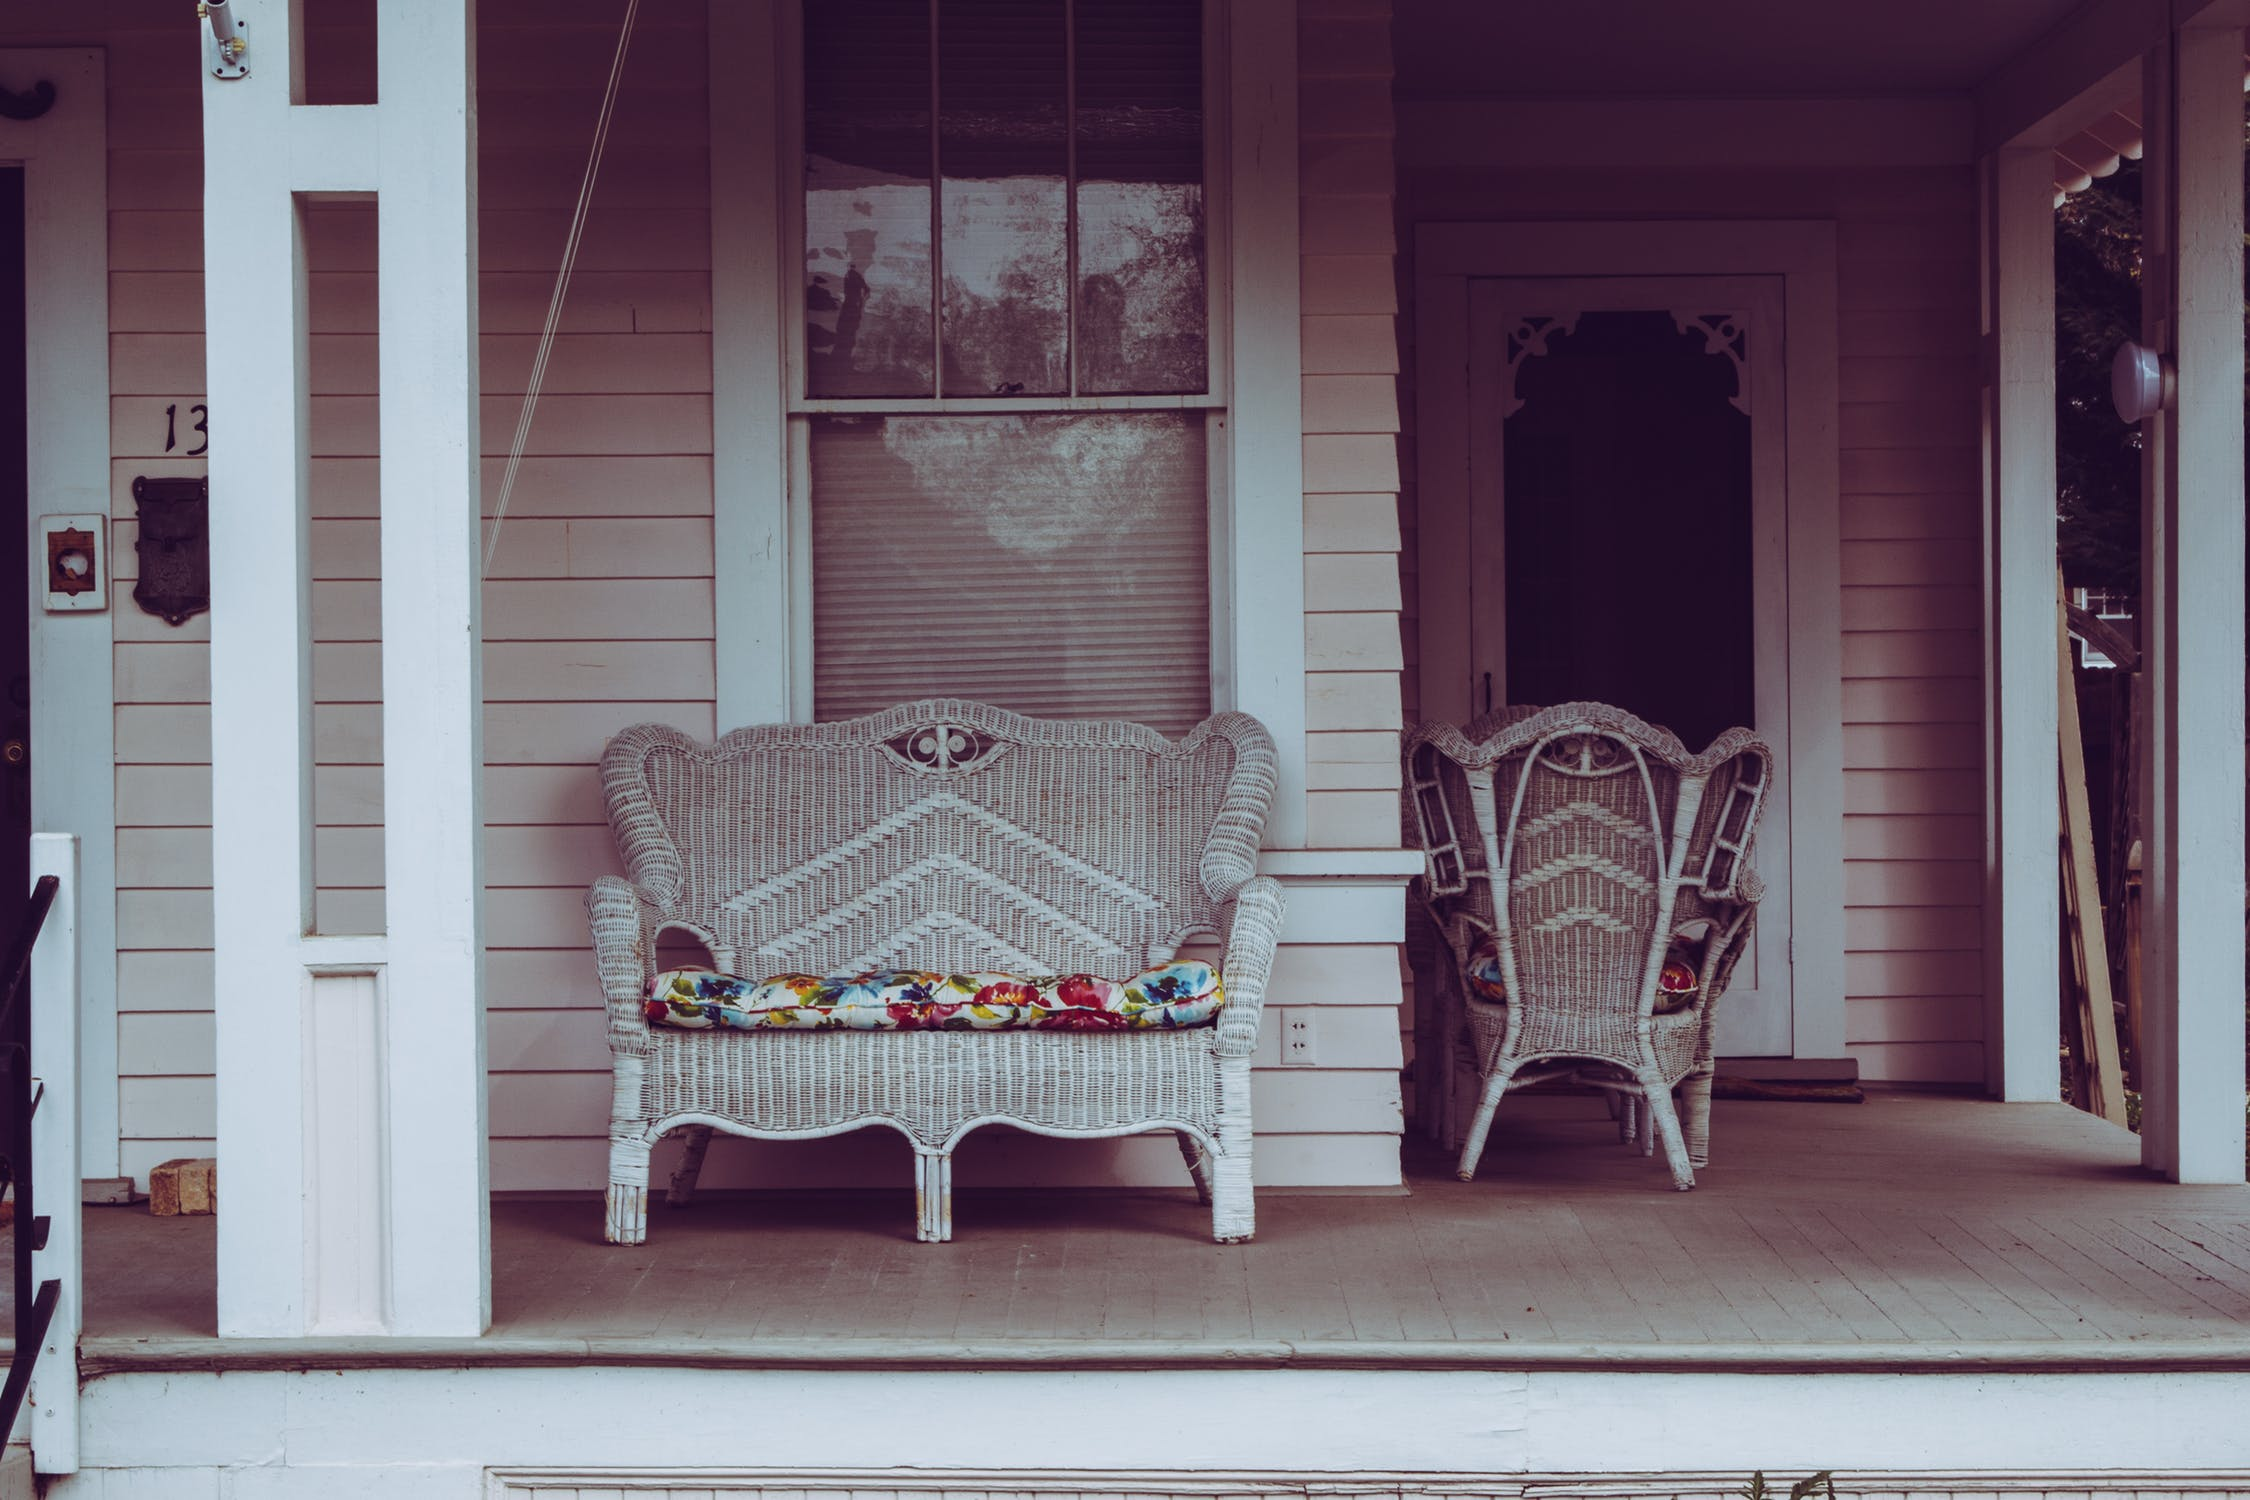 1. Out with the old - Act like the buyer and take a good at the outside of your home. Do you see any eyesores, like broken planters or old lawn decorations? Collect all old items that don't match the image you want to present to buyers and toss them. Replace them if need be, but this will freshen up your property and make it look well-nurtured.